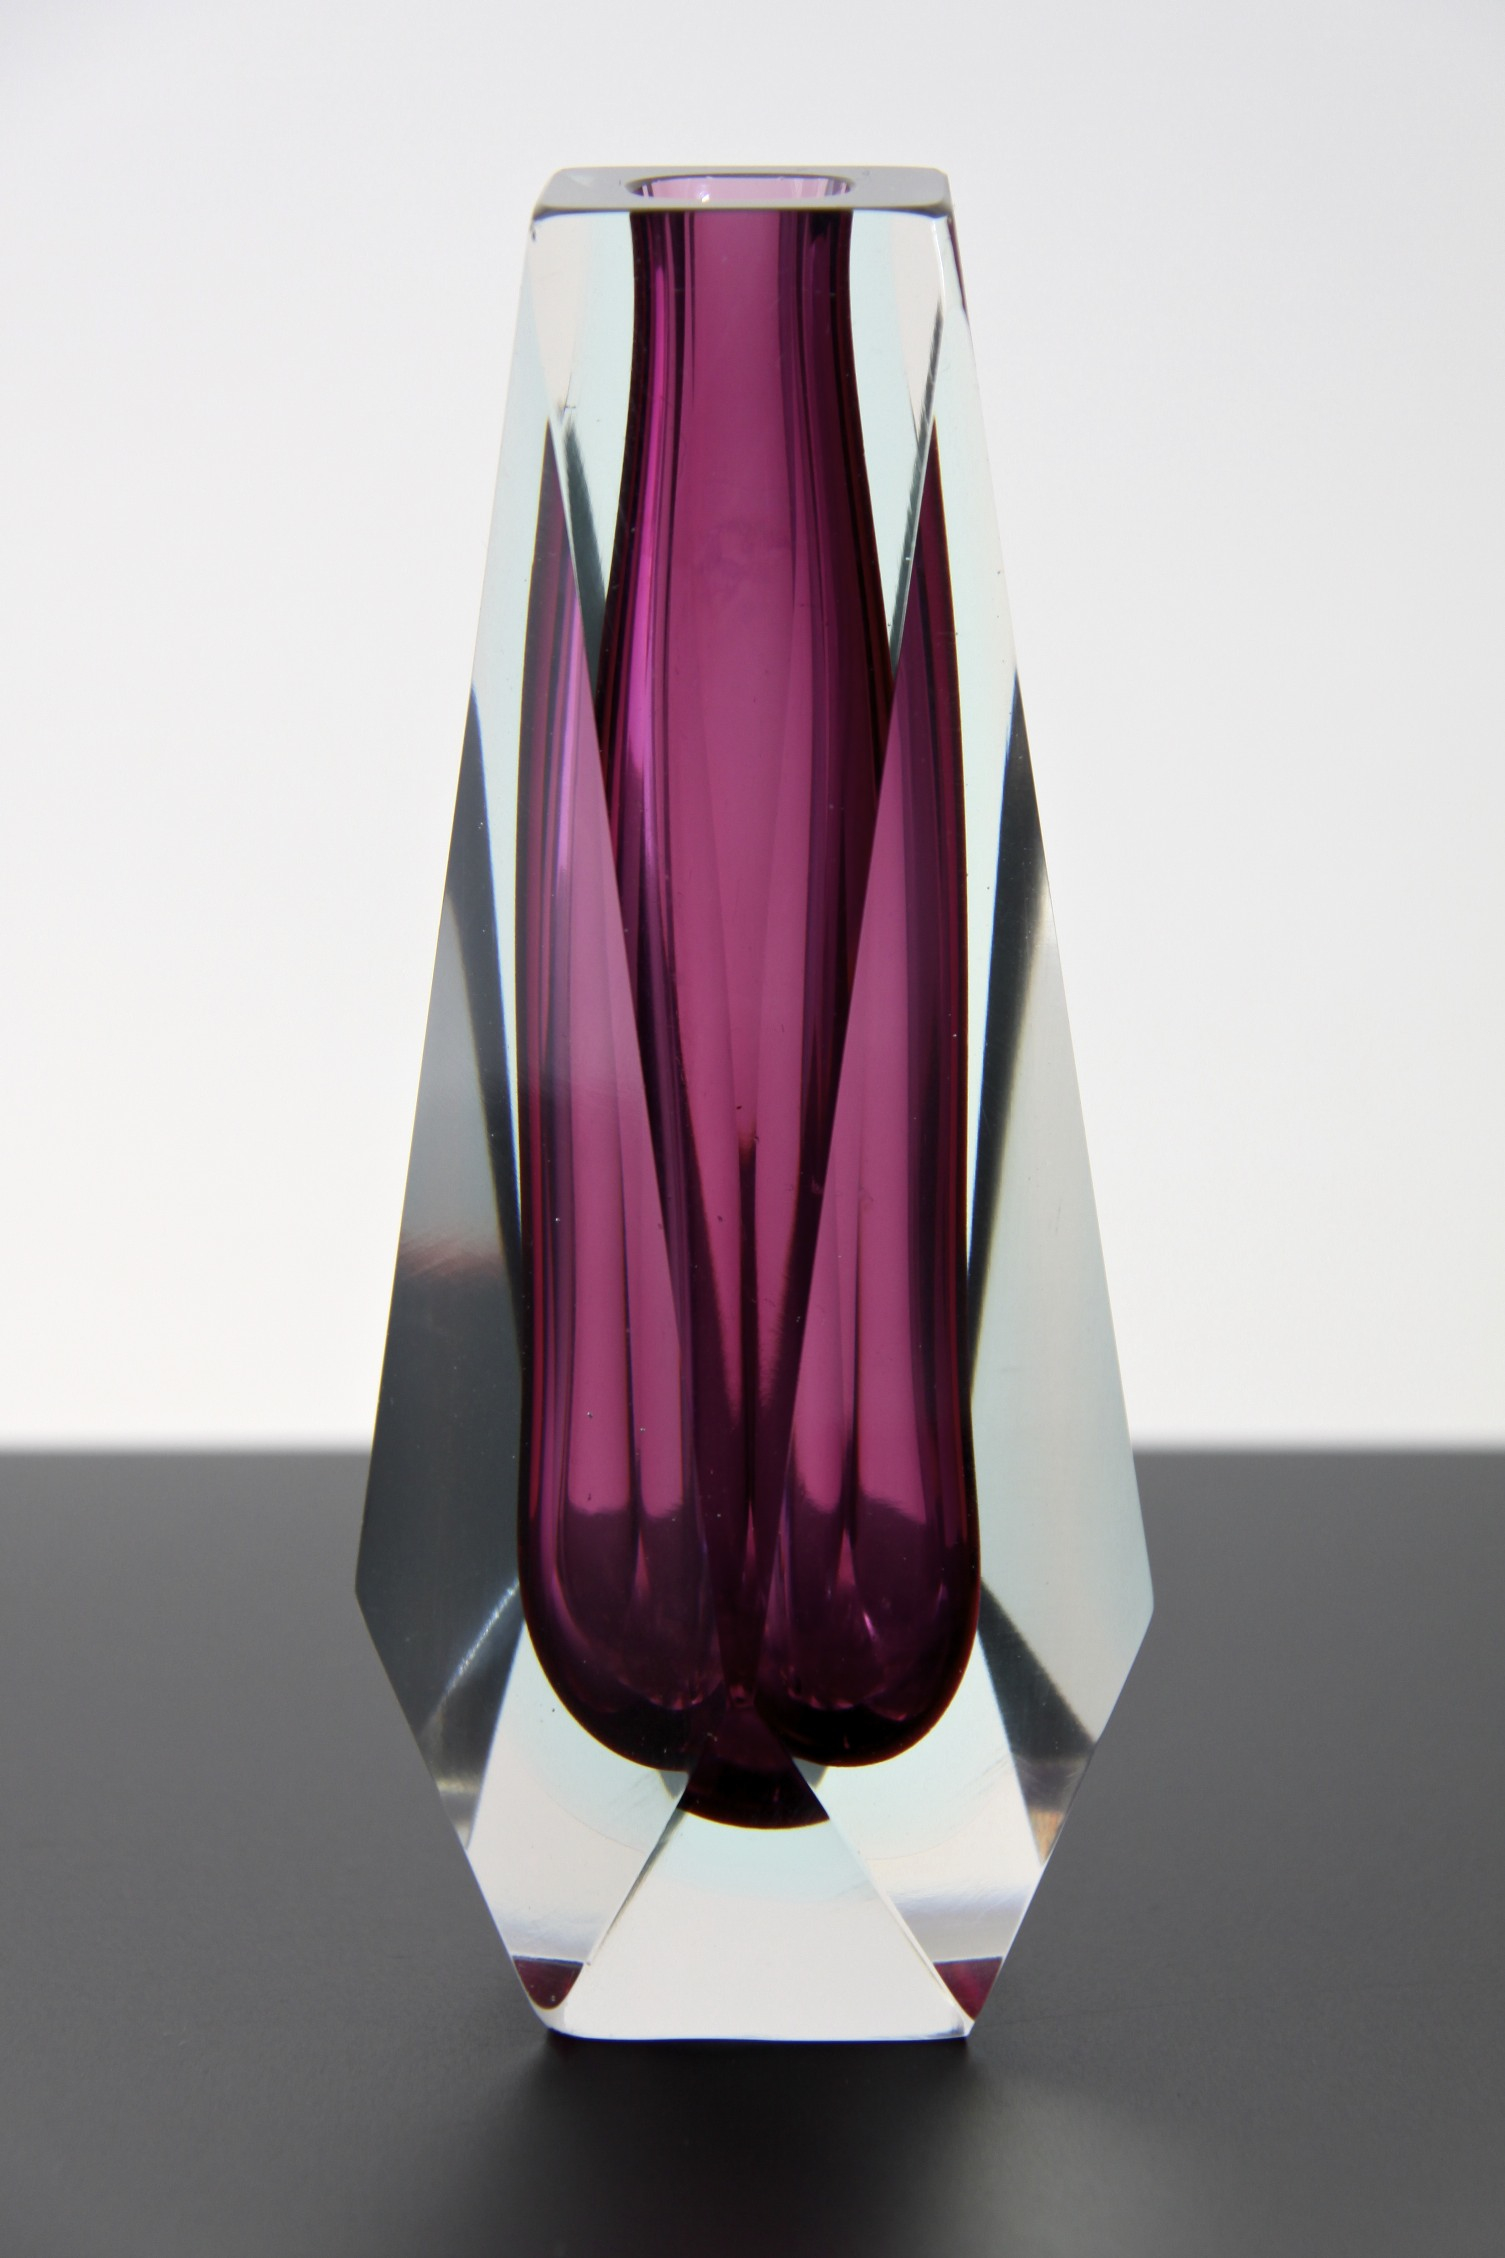 mandruzzato faceted sommerso cerise glass vase murano. Black Bedroom Furniture Sets. Home Design Ideas